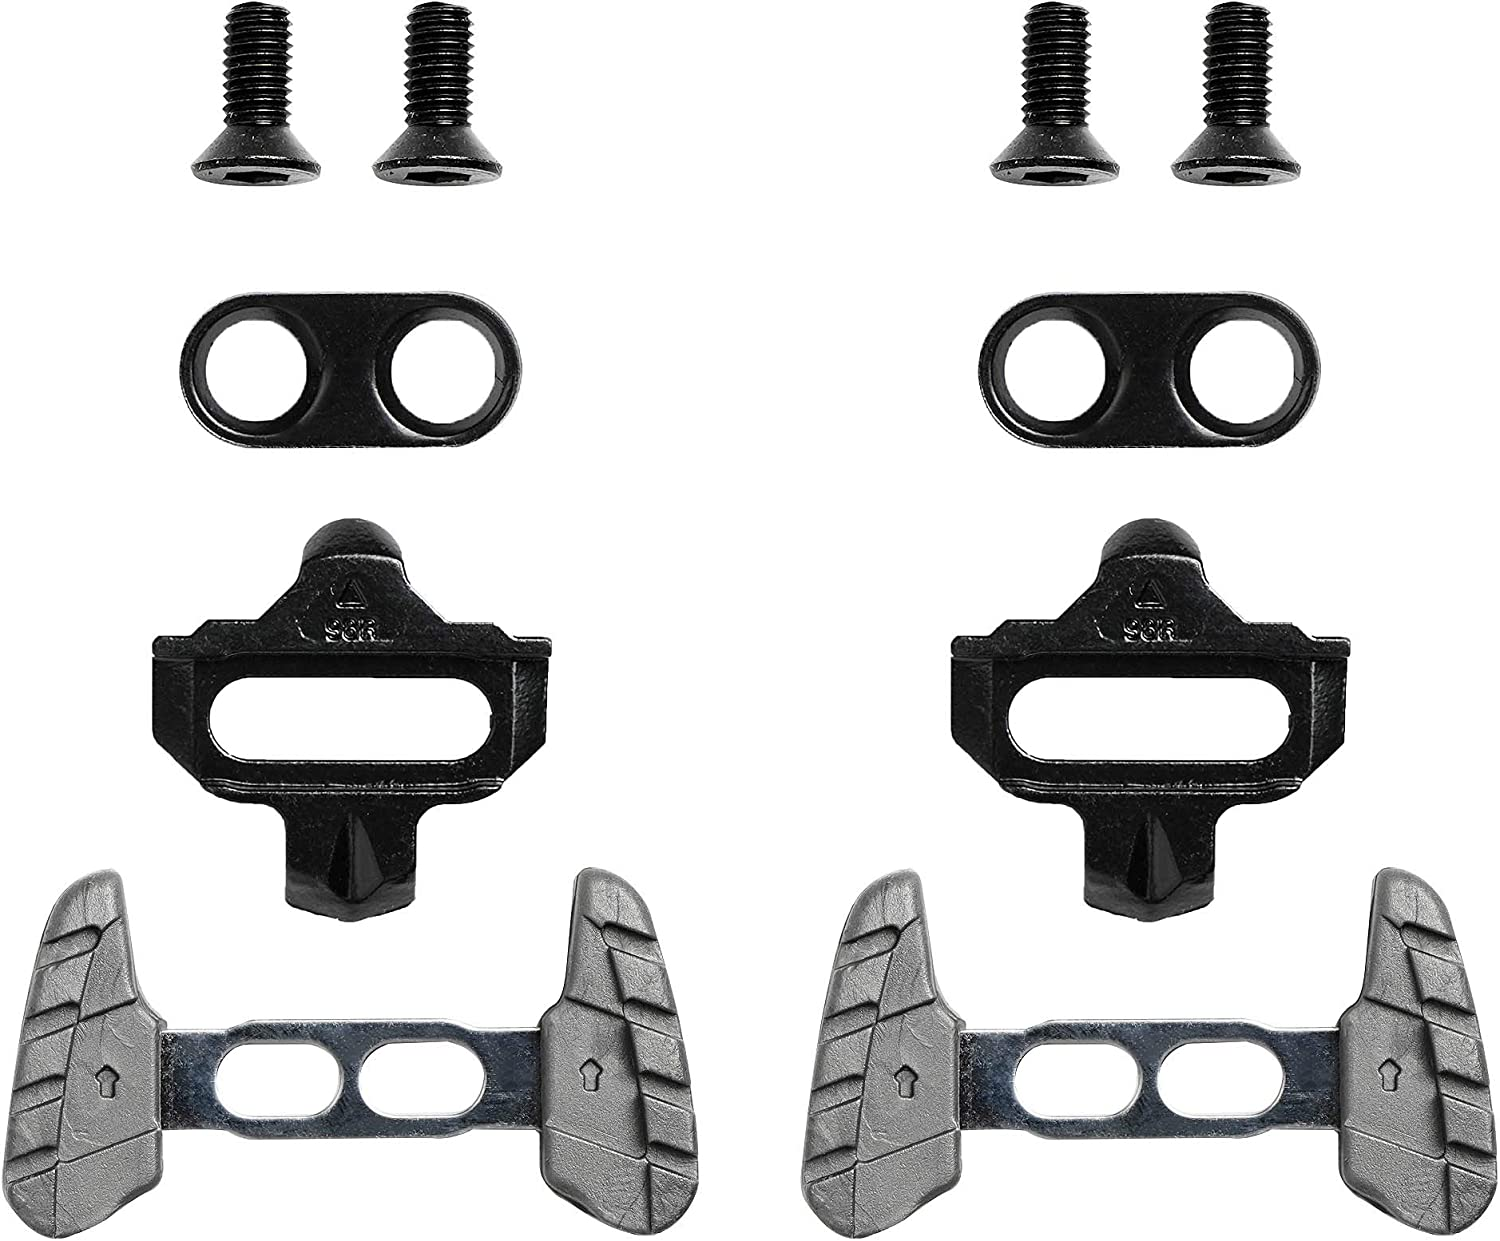 Road Bike Cleats For SPD Pedals New Packaged Set Shimano SM SH-51 SPD MTB